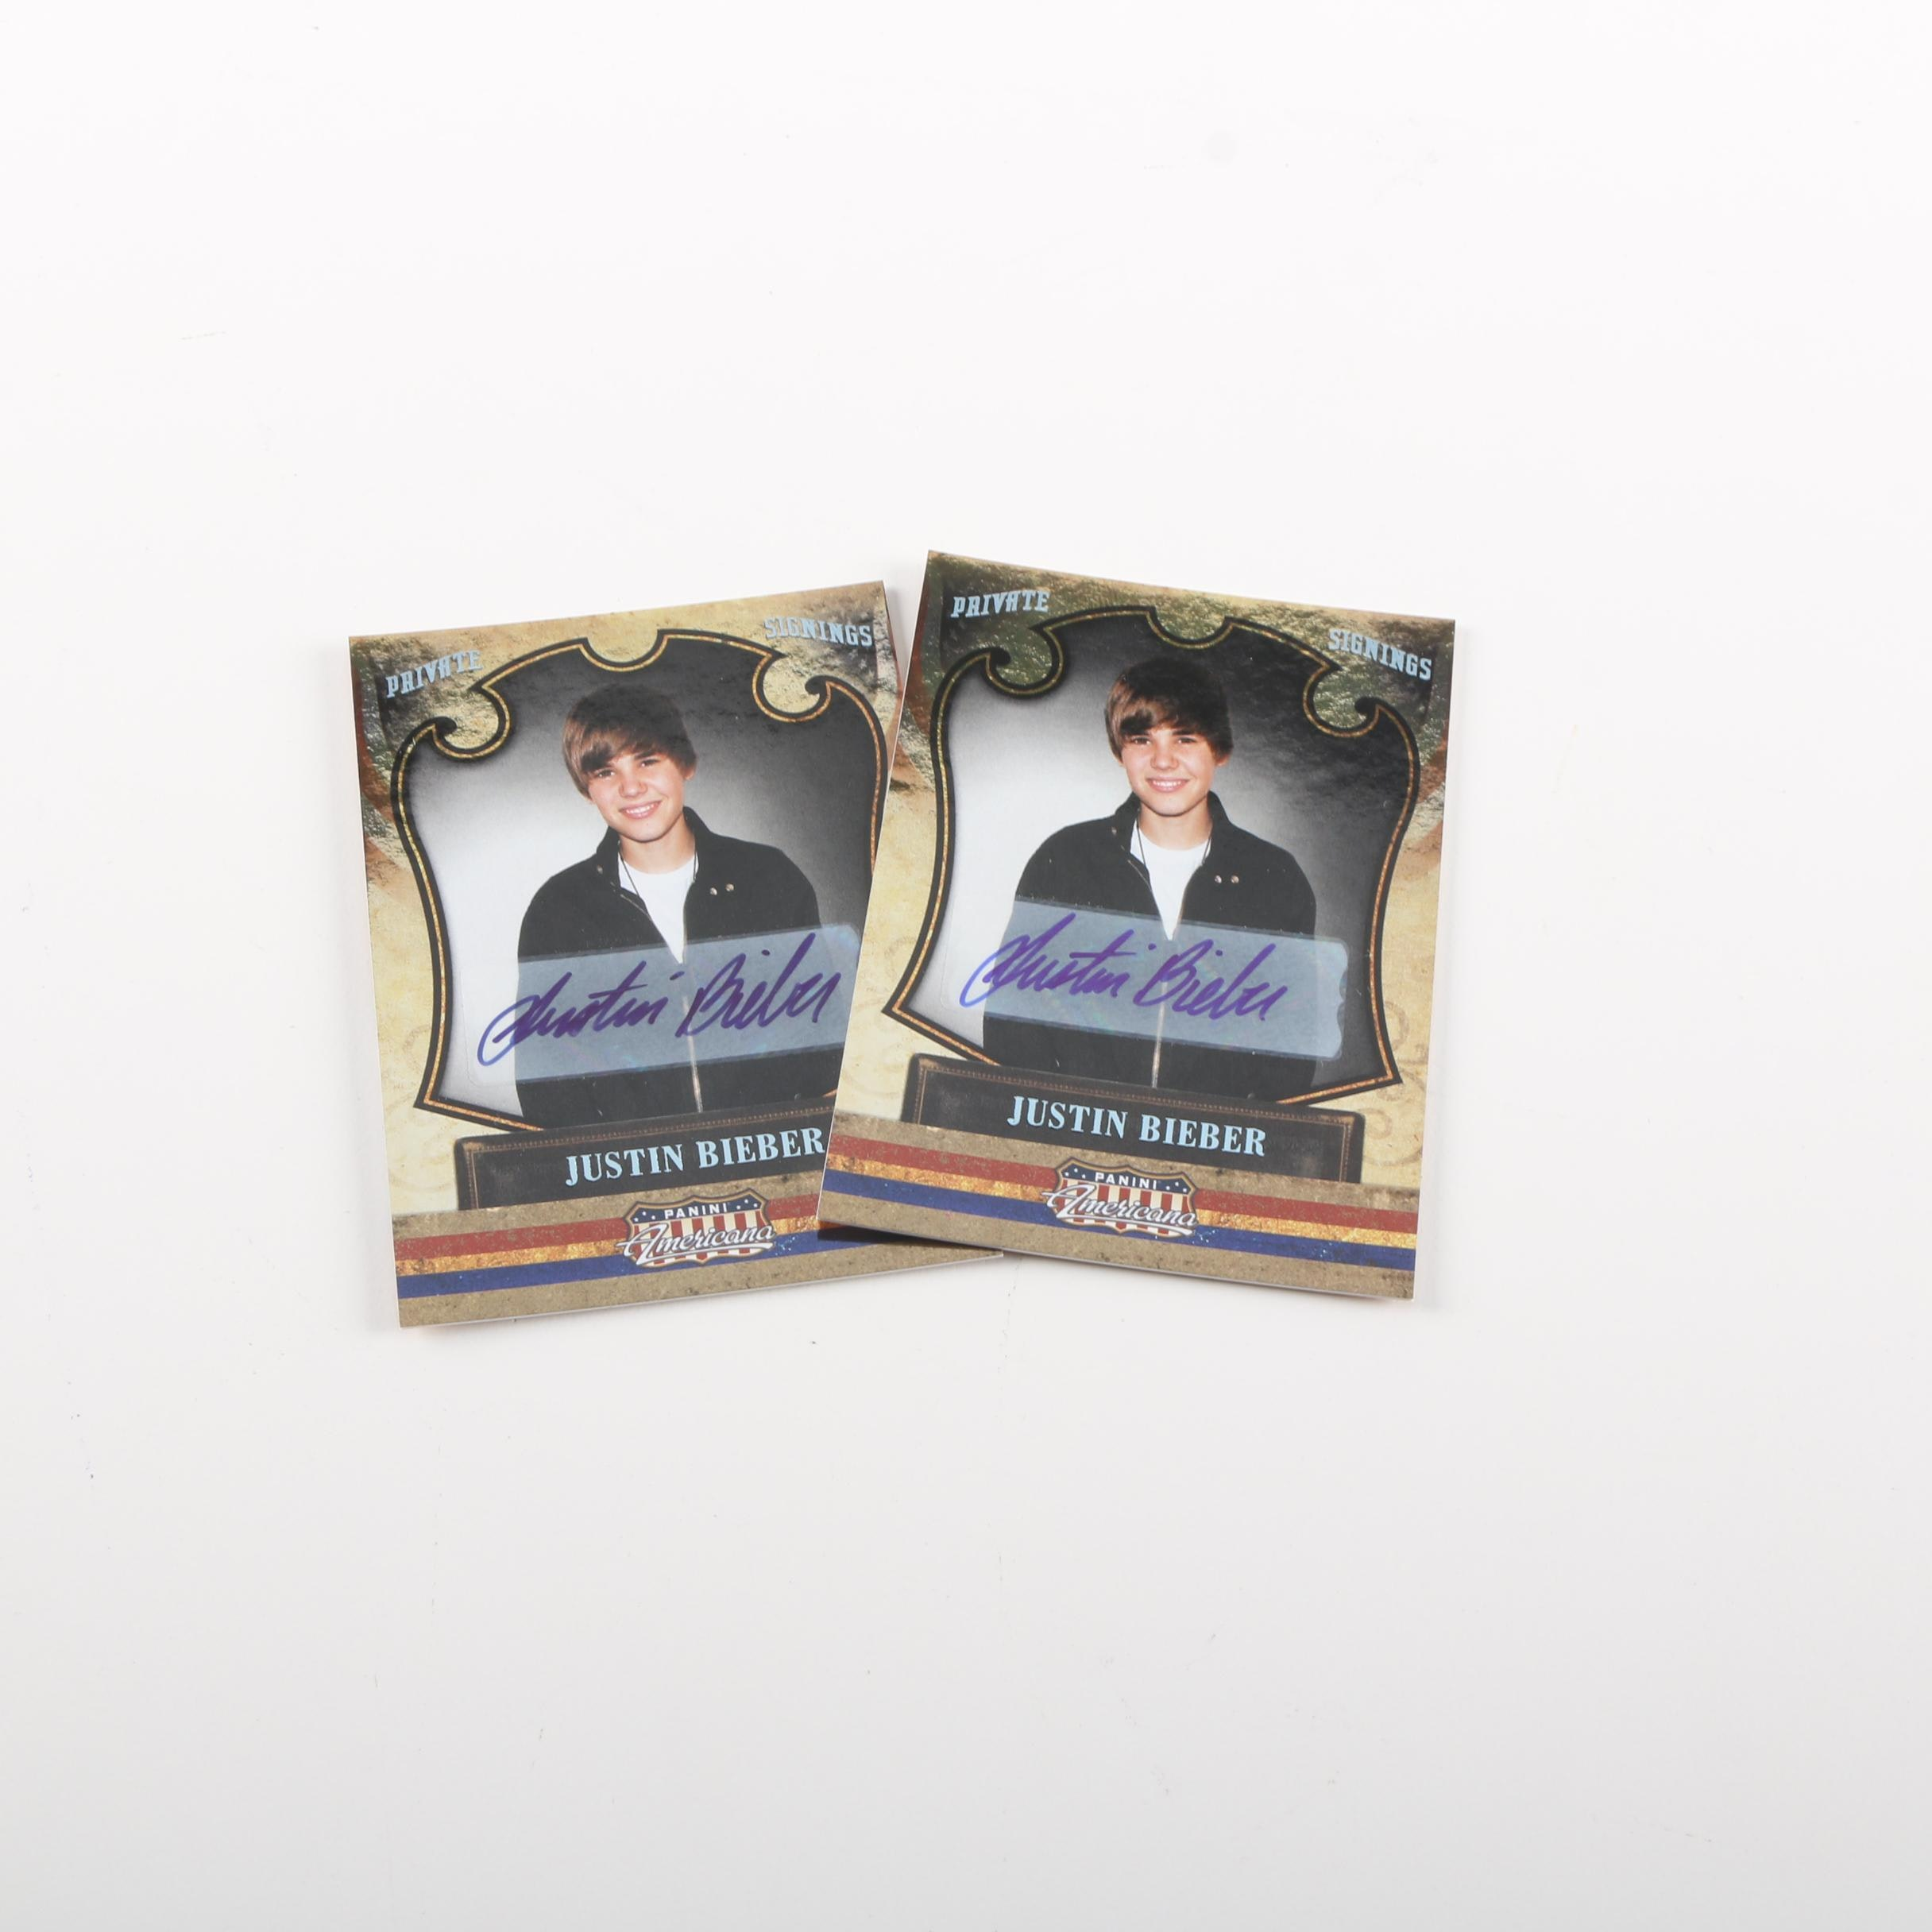 Pair of 2011 Autographed Justin Bieber Collector's Cards